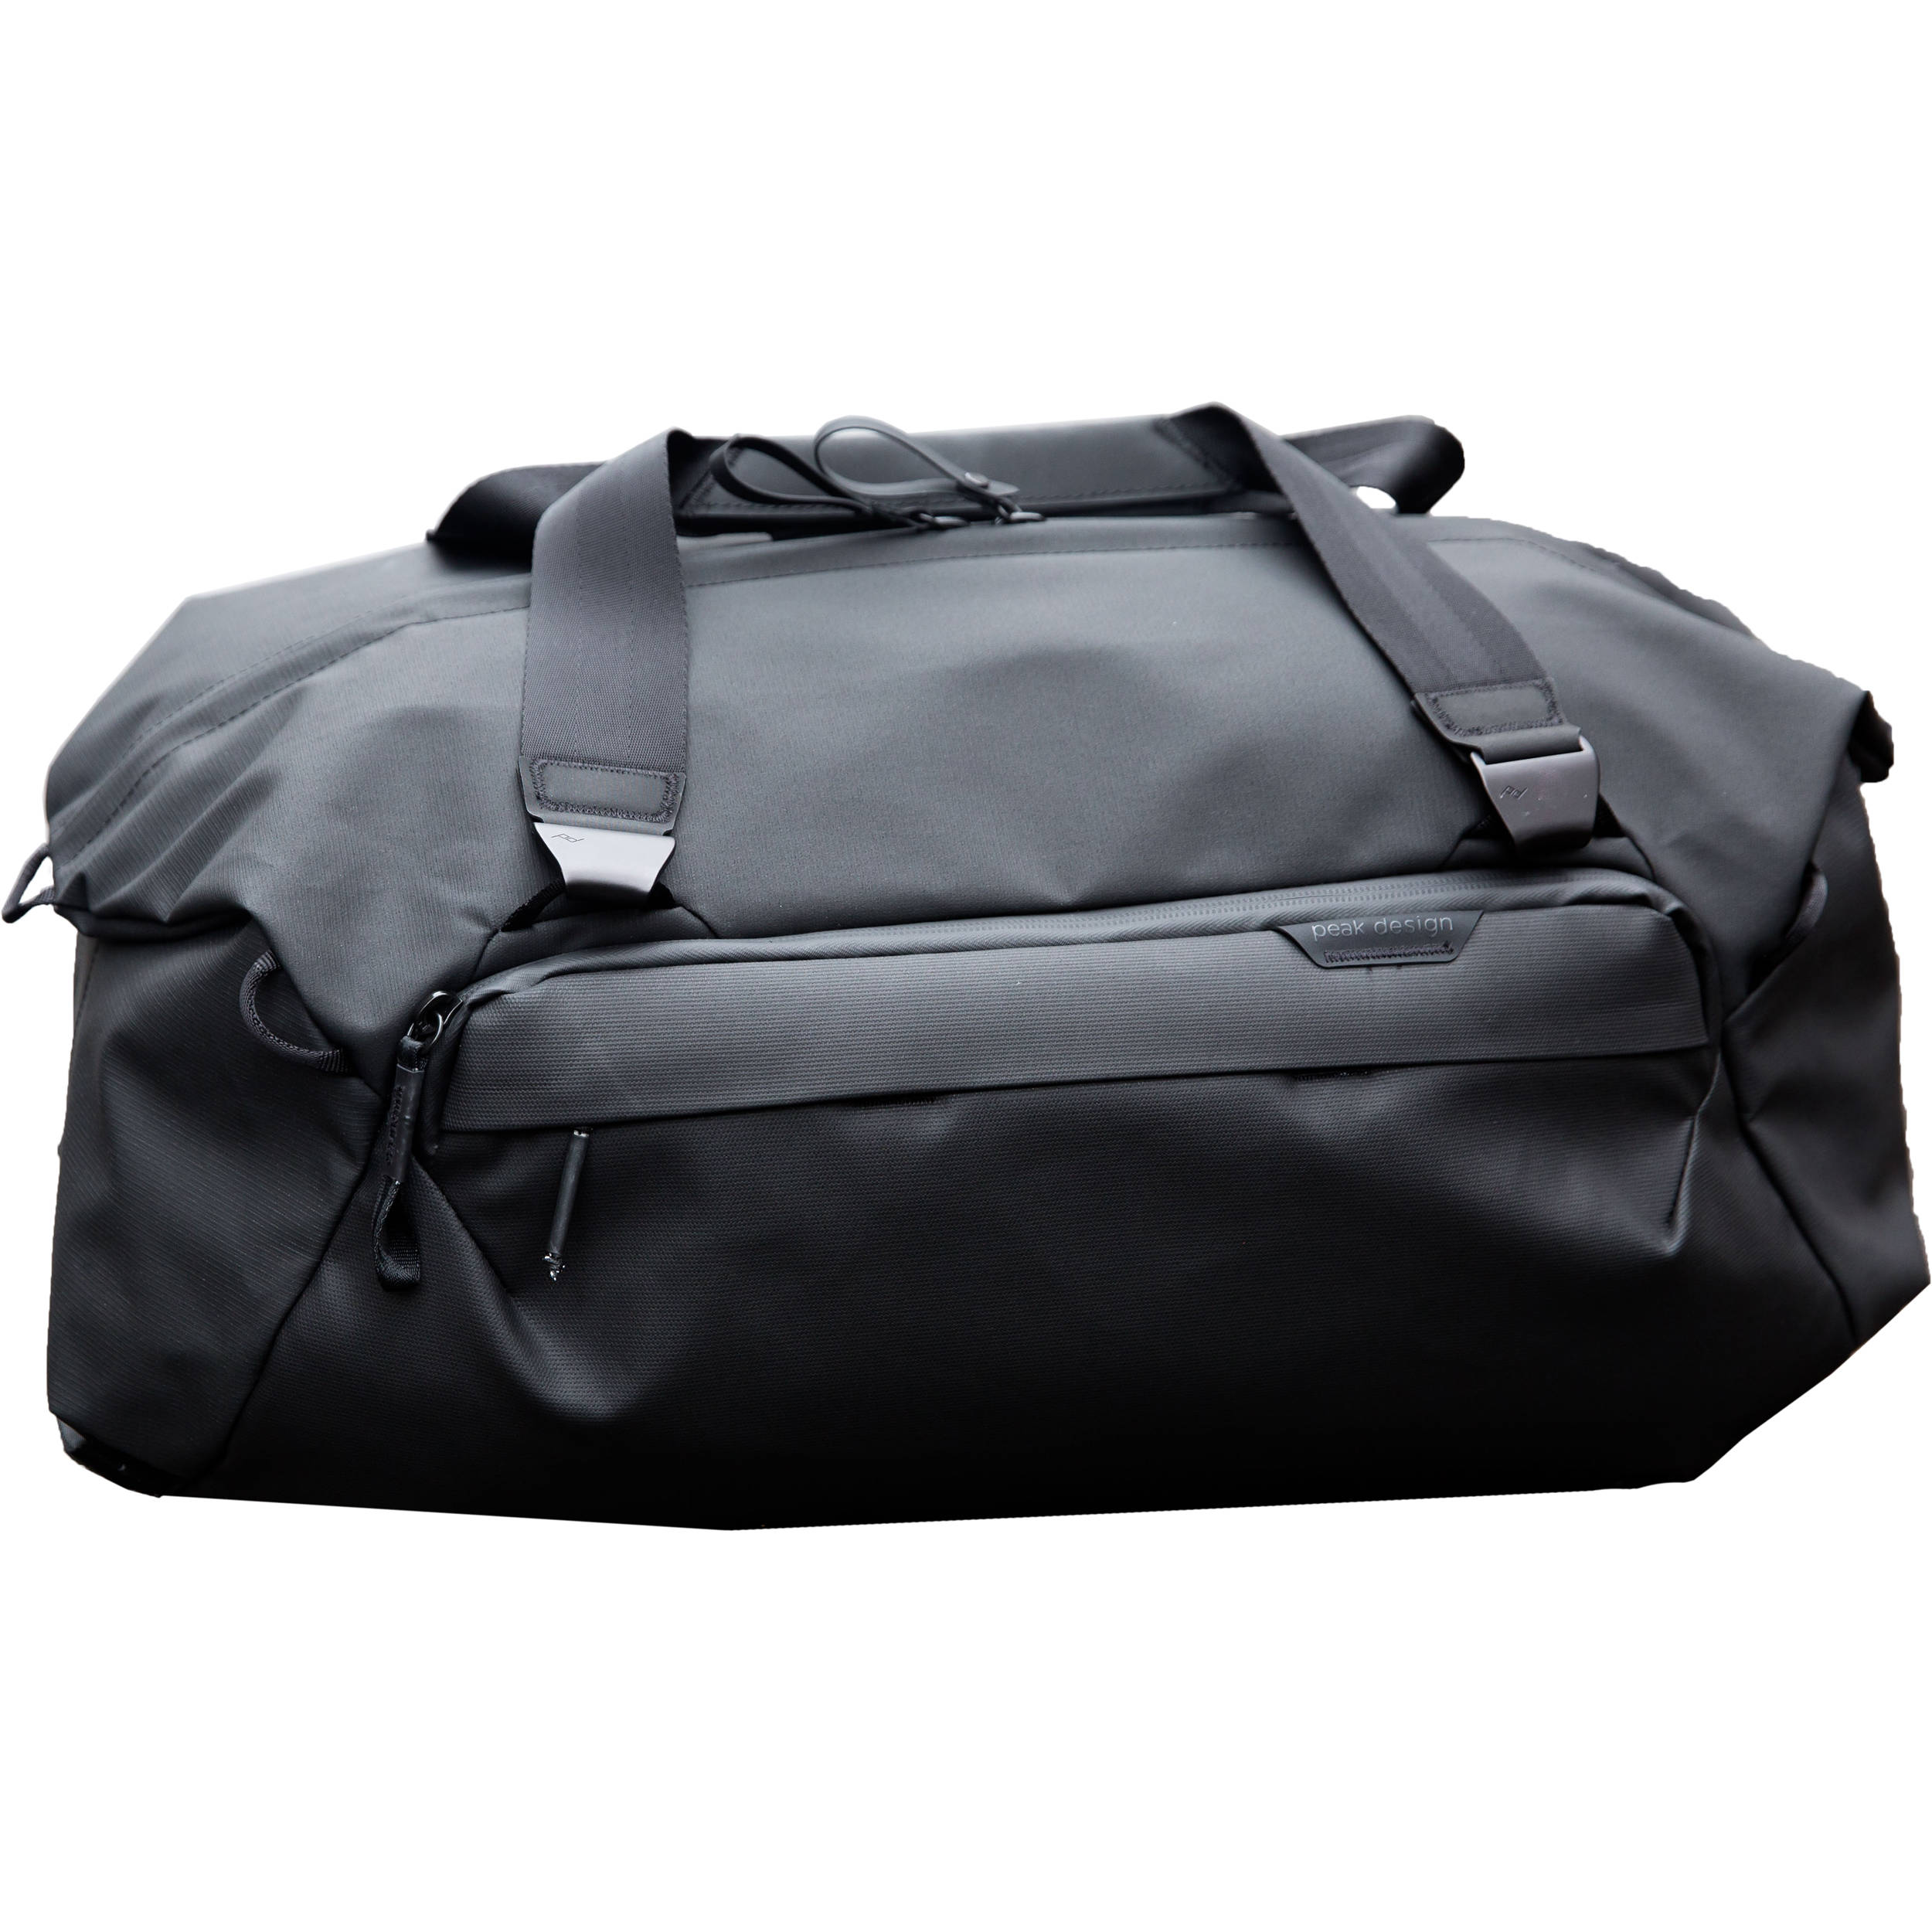 Image of Peak Design - Travel Duffel - 35L - Black